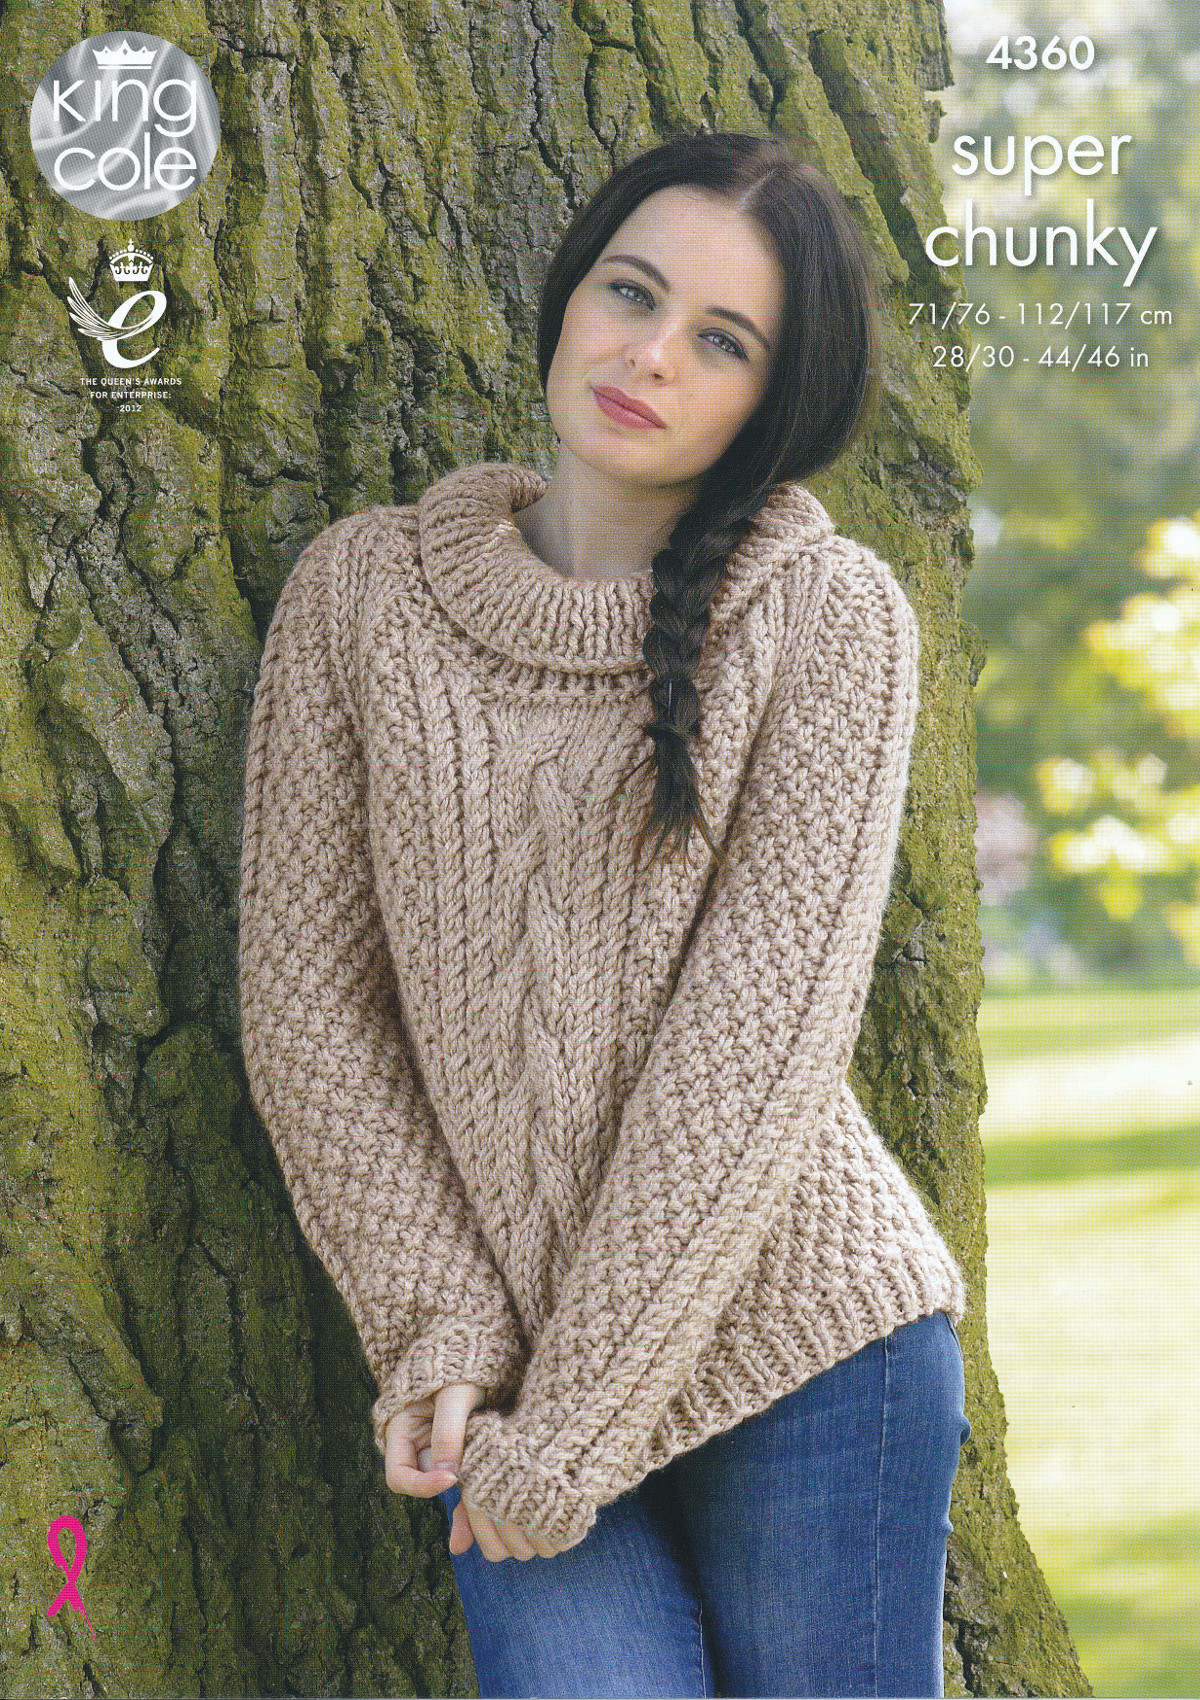 Knitting Pattern Jumper Ladies : Ladies Super Chunky Knitting Pattern King Cole Cable Knit Sweaters Jumpers 43...